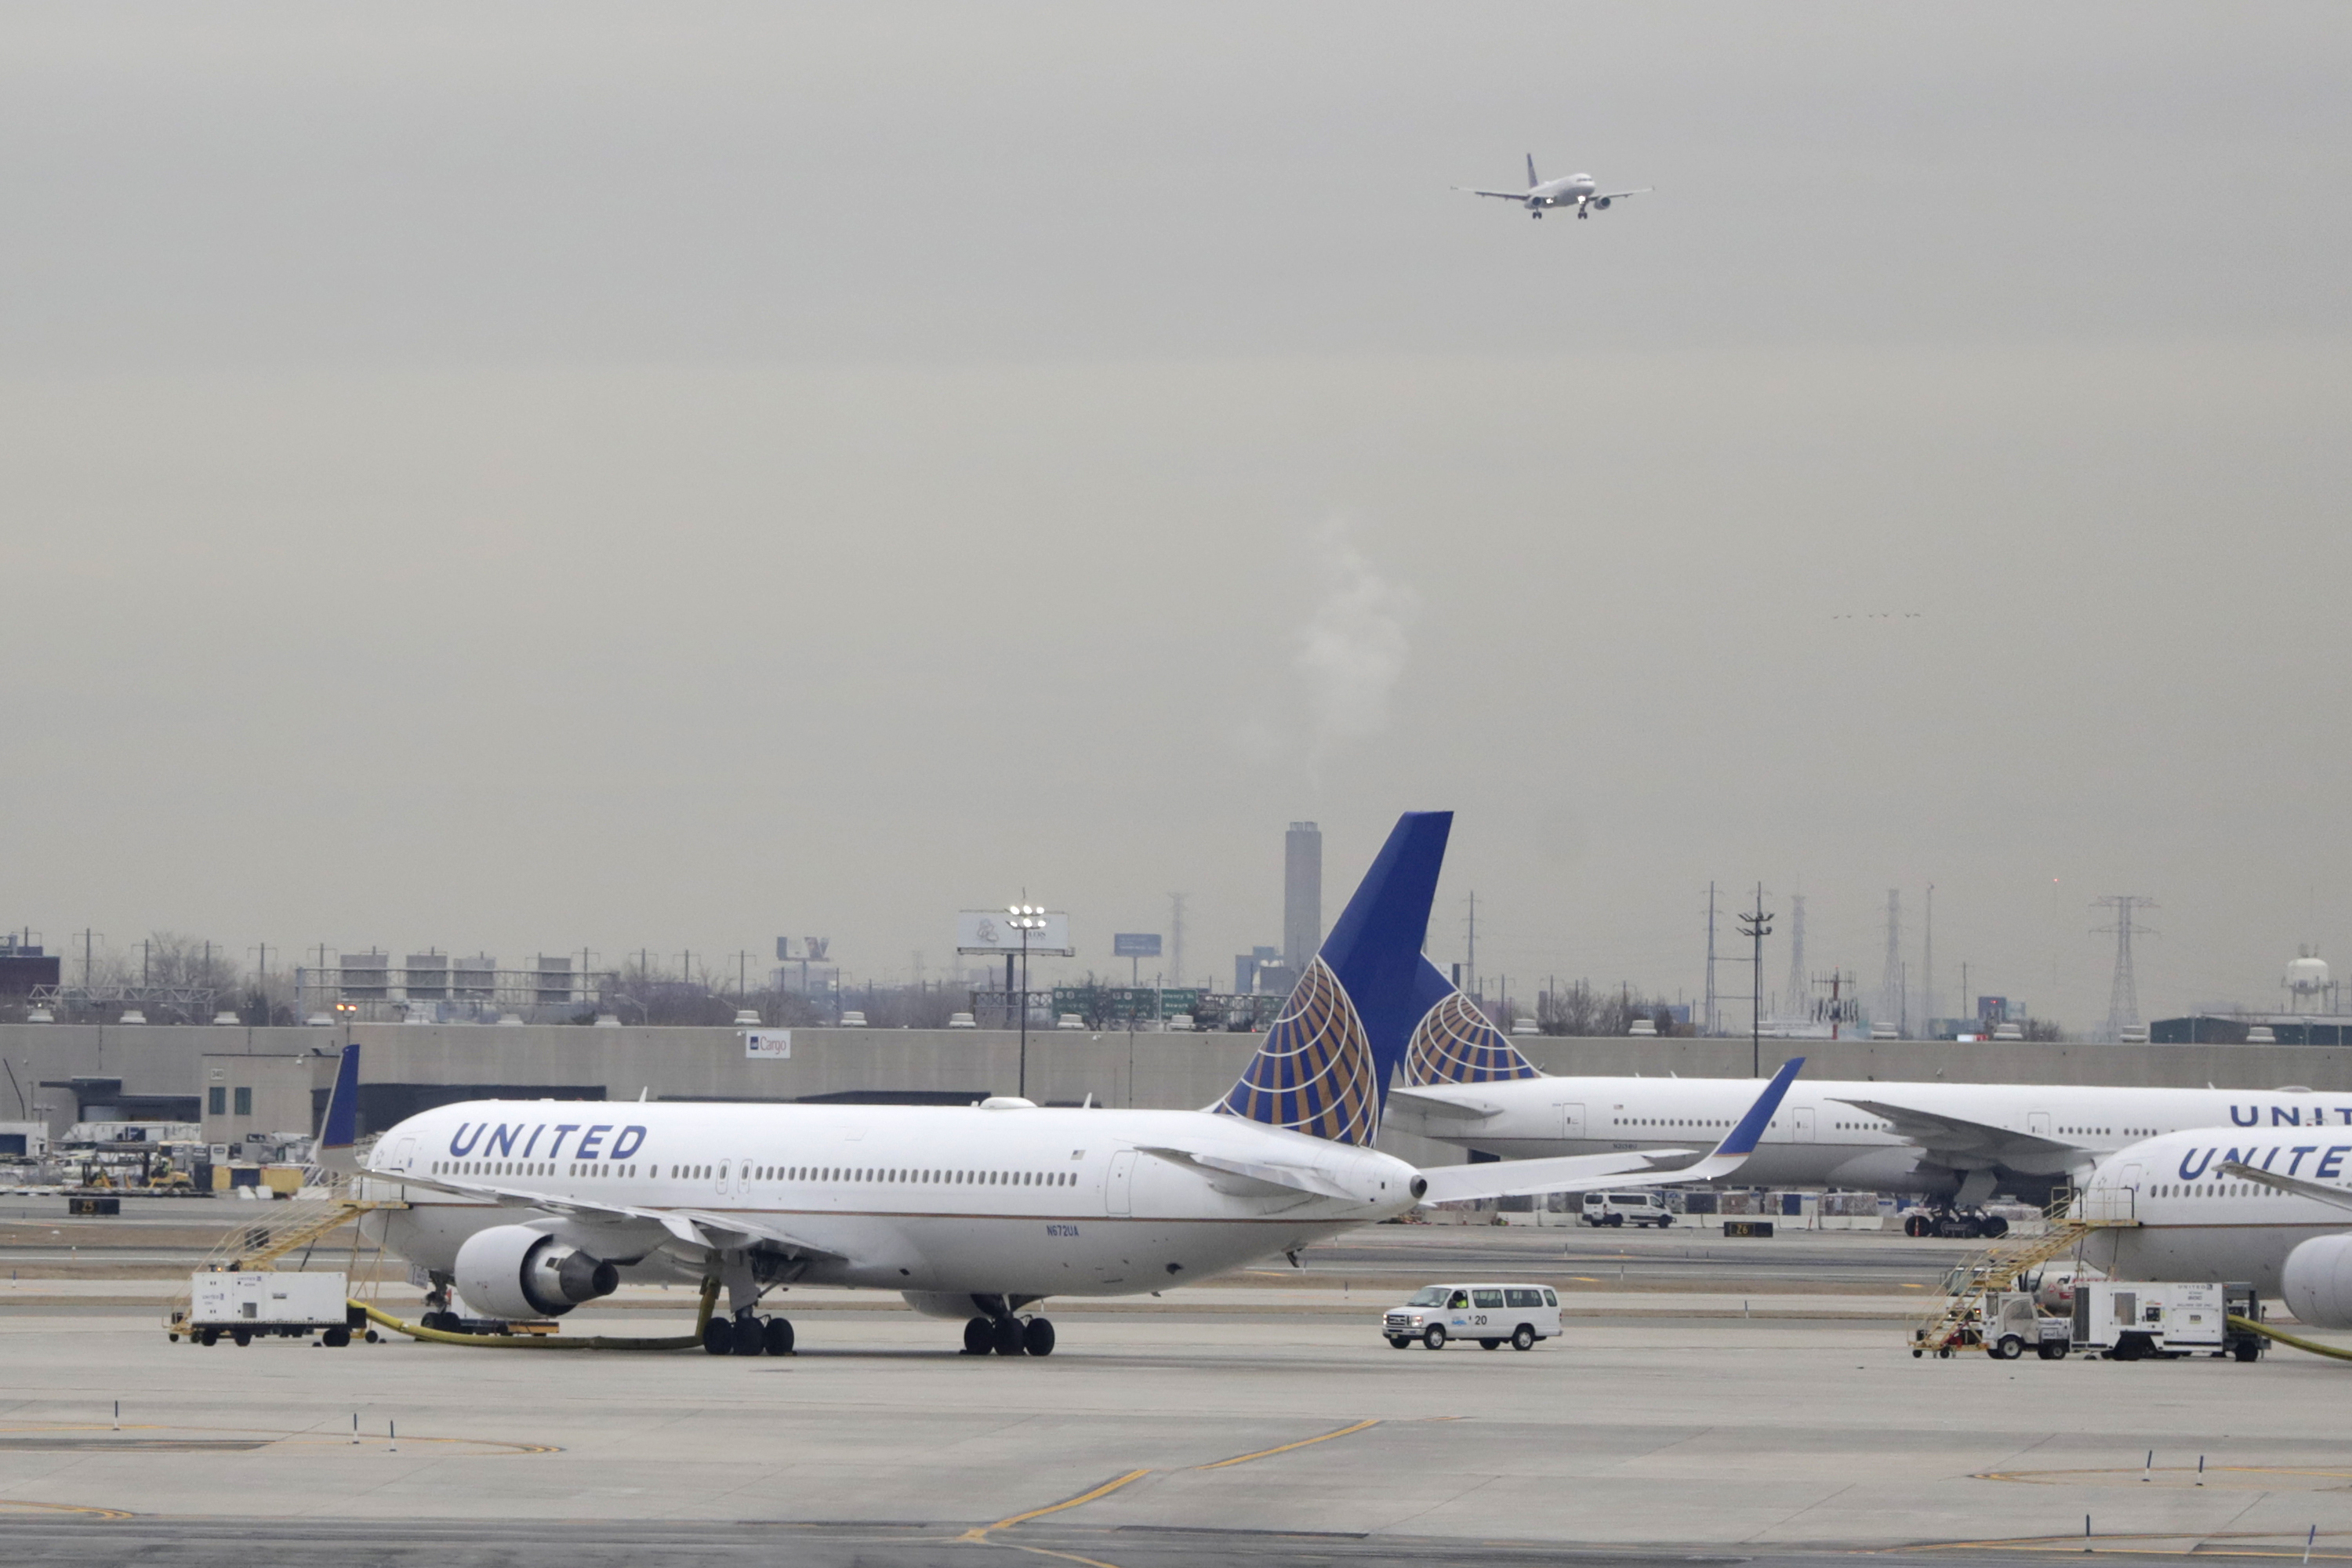 United first airline to offer 'non-binary' gender booking options